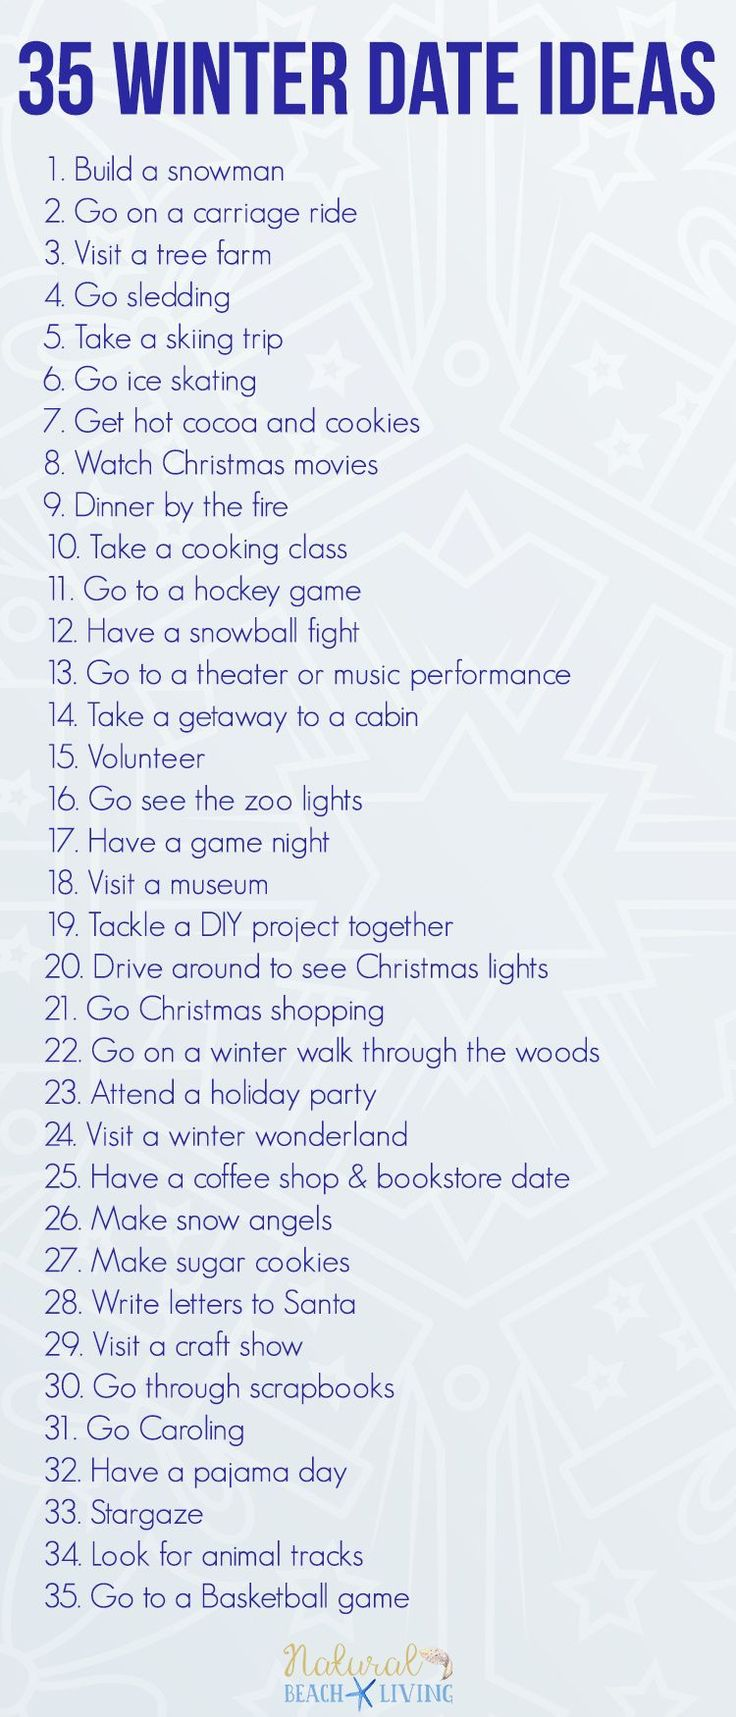 35 Fun Winter Date Ideas You Can Do On a Budget